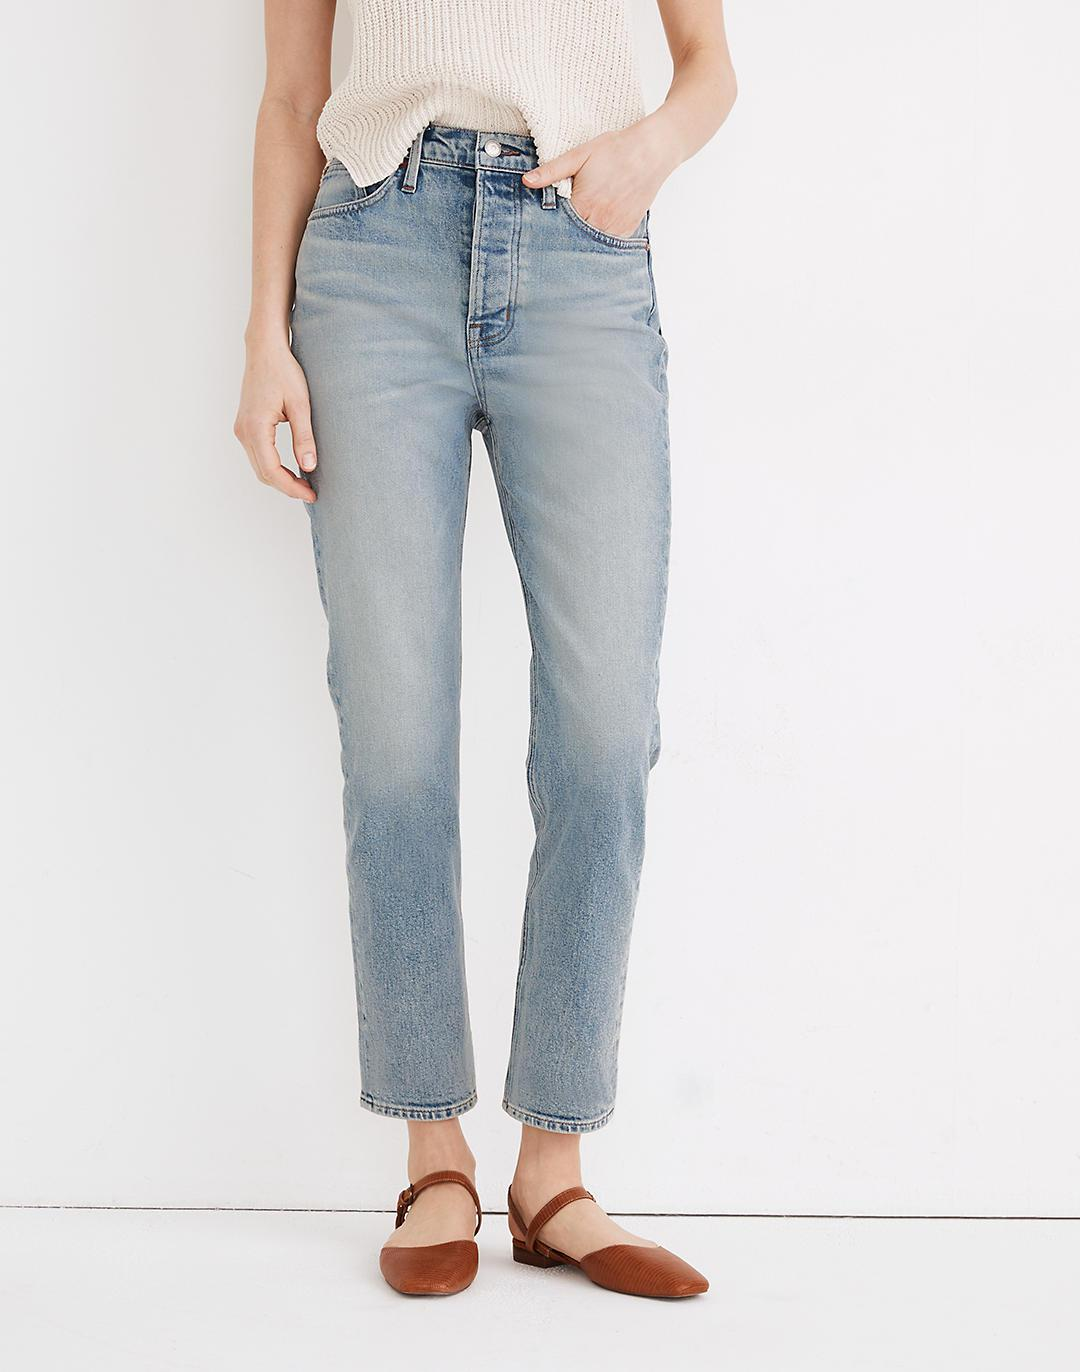 Rivet & Thread Perfect Vintage Jeans in Ryerson Wash 3